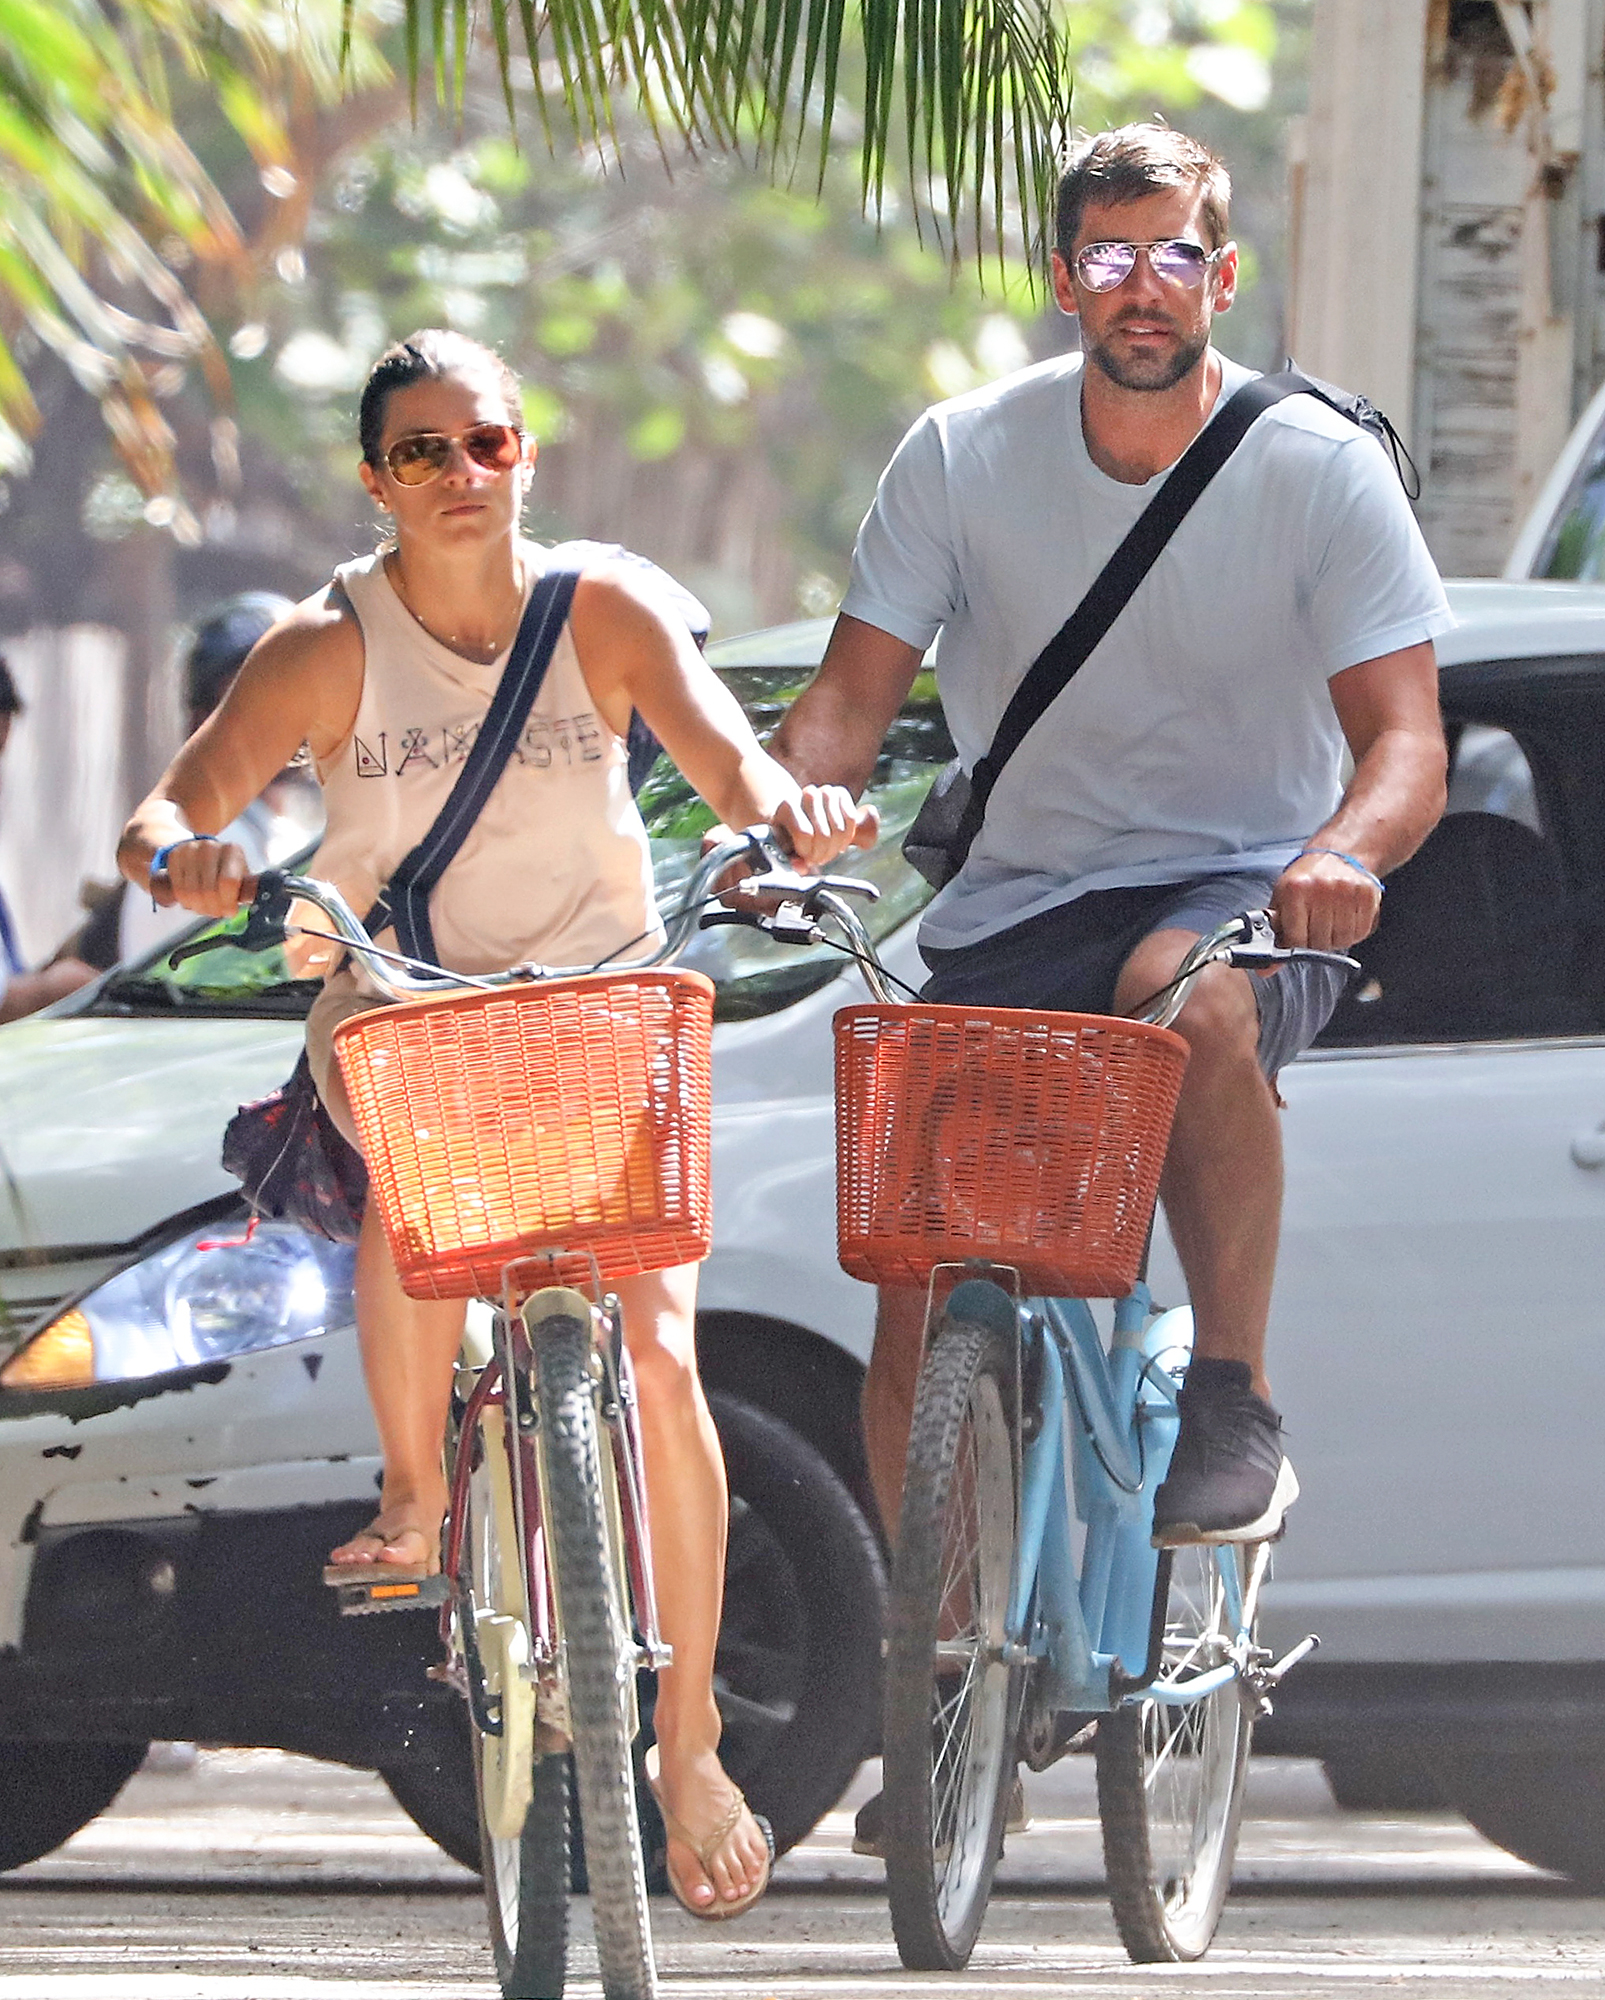 EXCLUSIVE: **NO WEB UNTIL 8.30AM PST ON TUESDAY FEBRUARY 27, 2018** Danica Patrick and Aaron Rodgers ride bikes during their romantic Mexican getaway